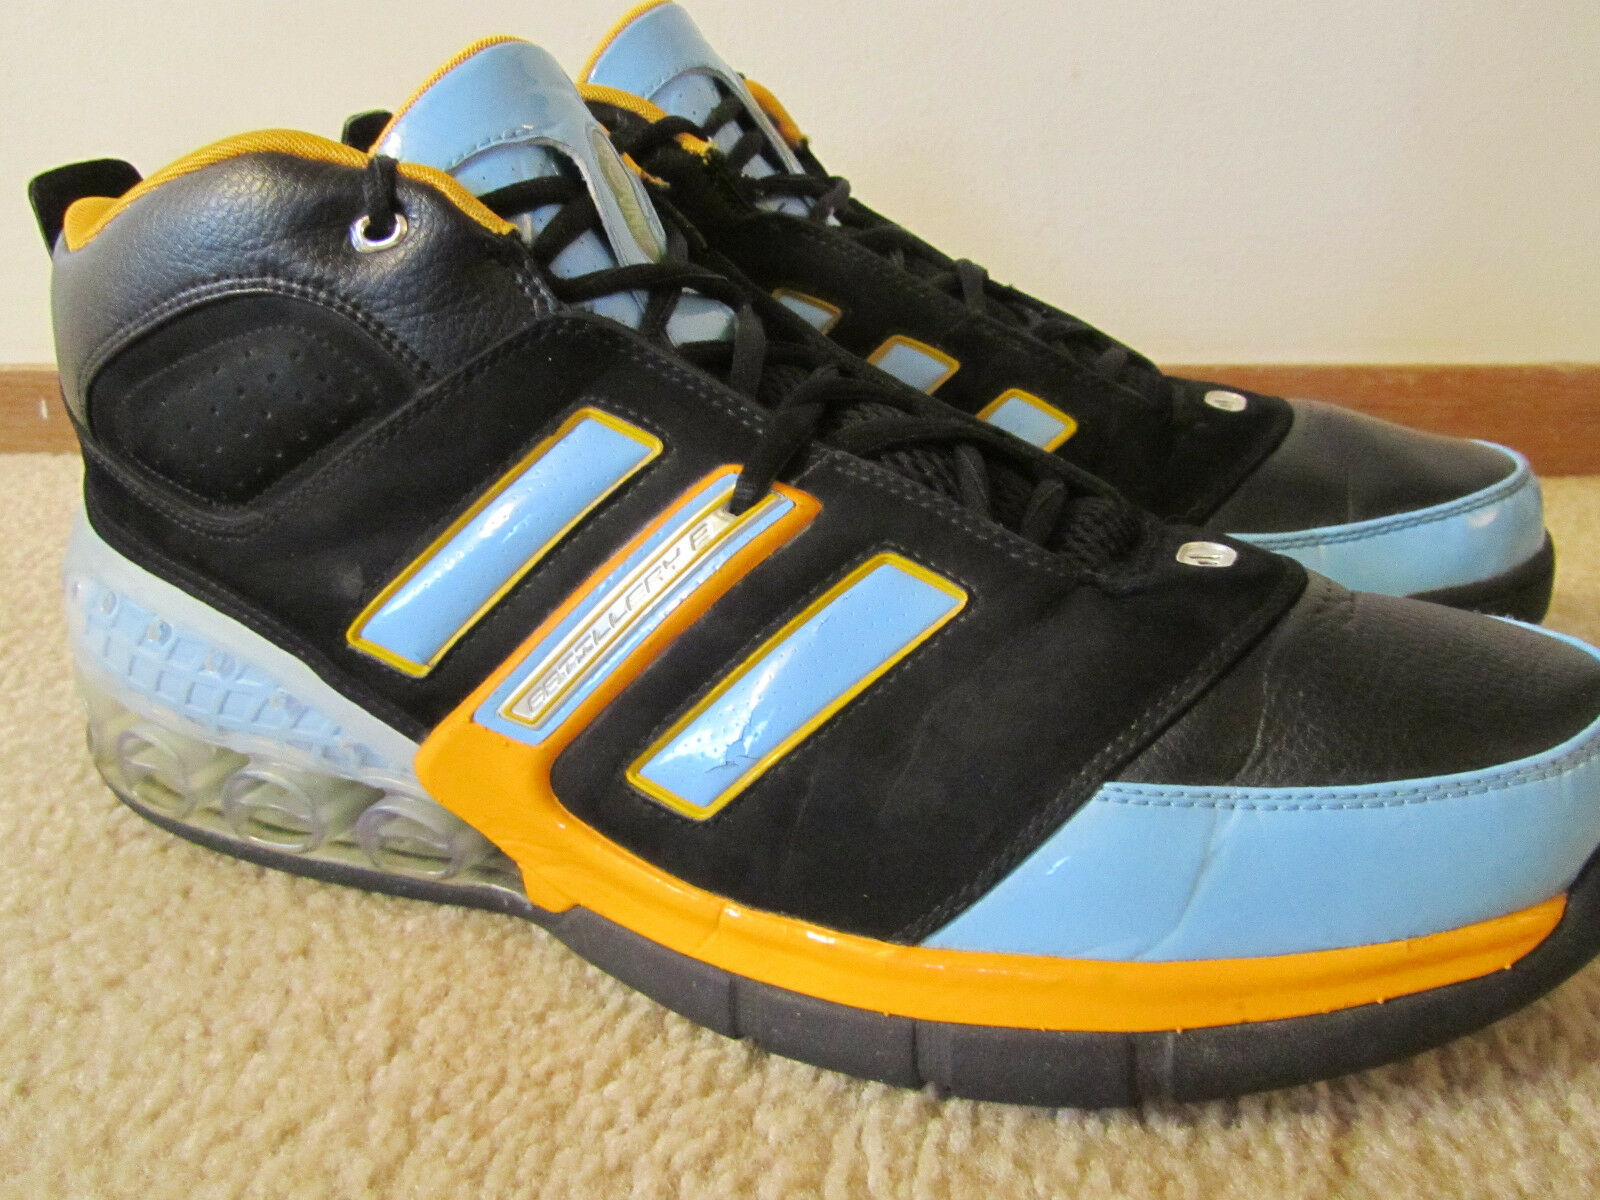 Blue & Gold Adidas Bounce Artillery II Basketball Shoes, Price reduction Comfortable and good-looking